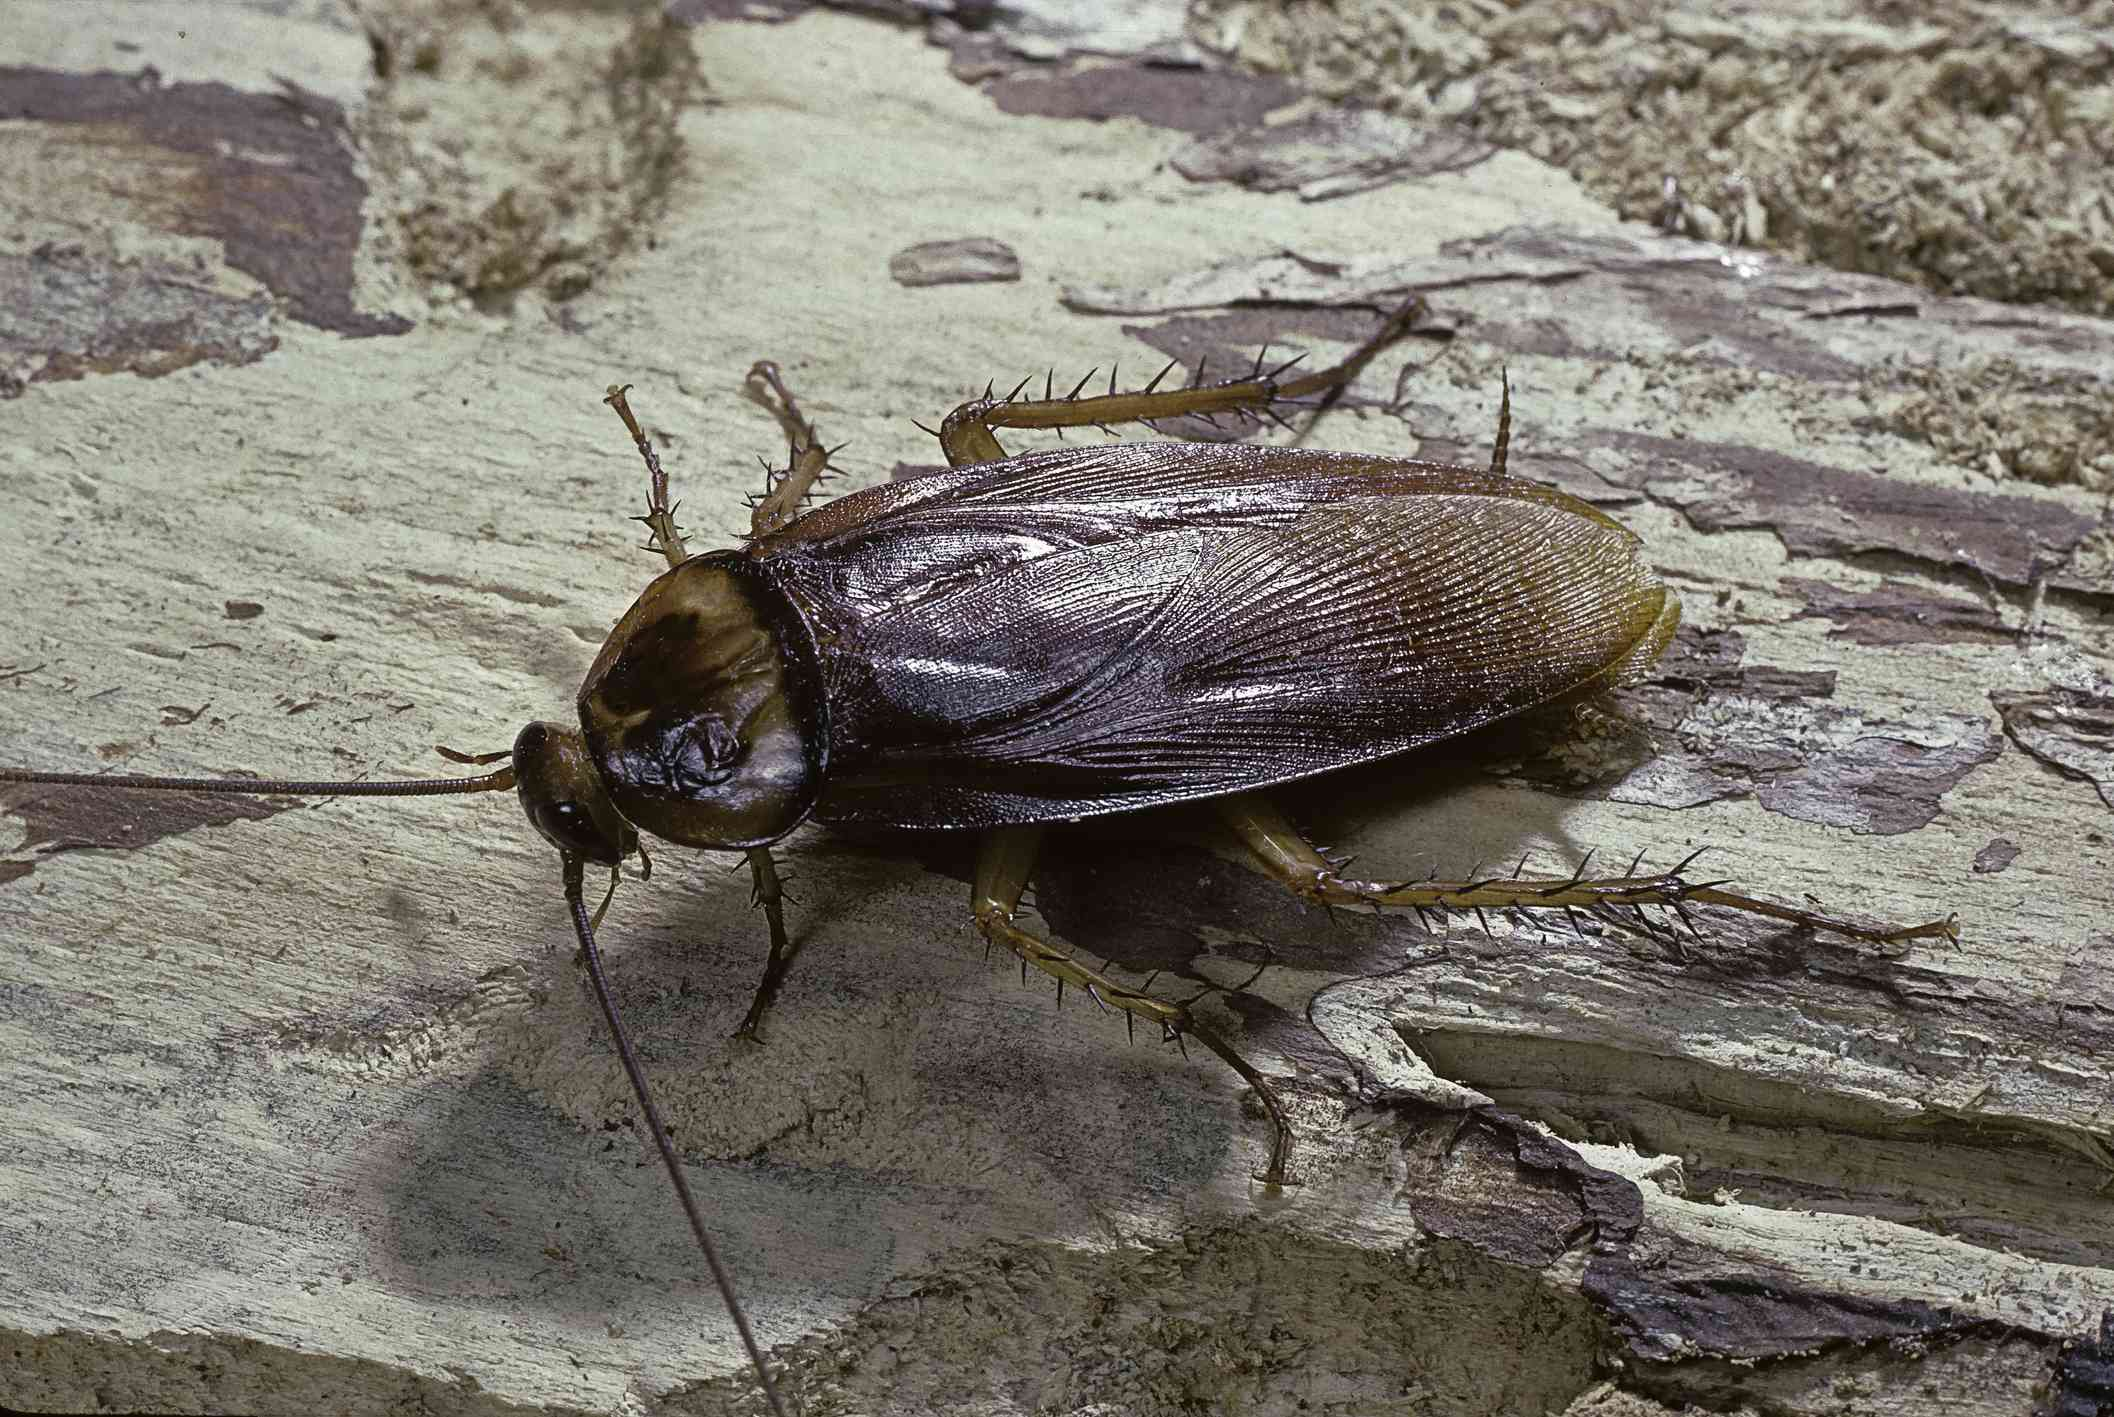 A brown cockroach with spiky legs on a tree branch